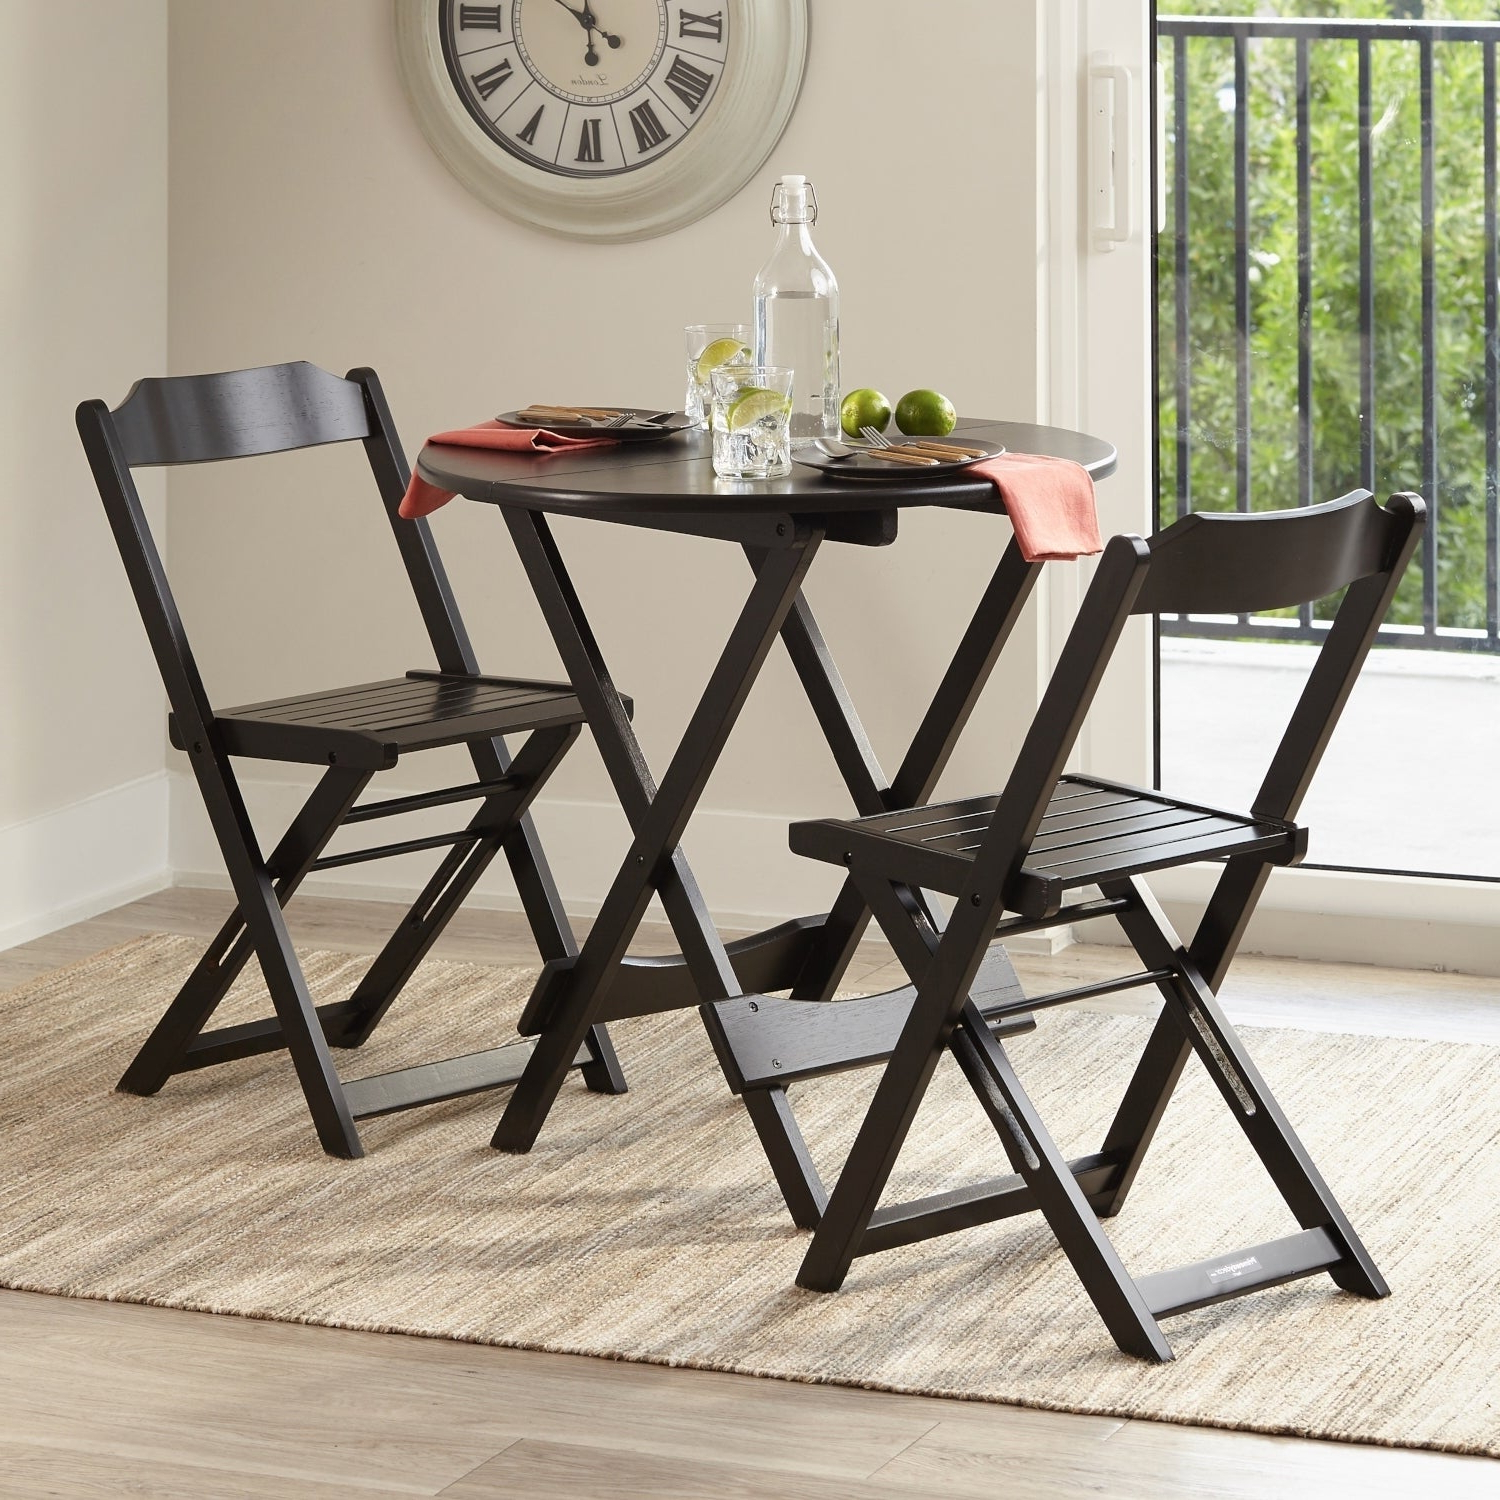 Most Recent Lonon 3 Piece Dining Sets Pertaining To Shop Bistro Set 3 Piece Outdoor Dining Set Round Table Folding (View 10 of 25)